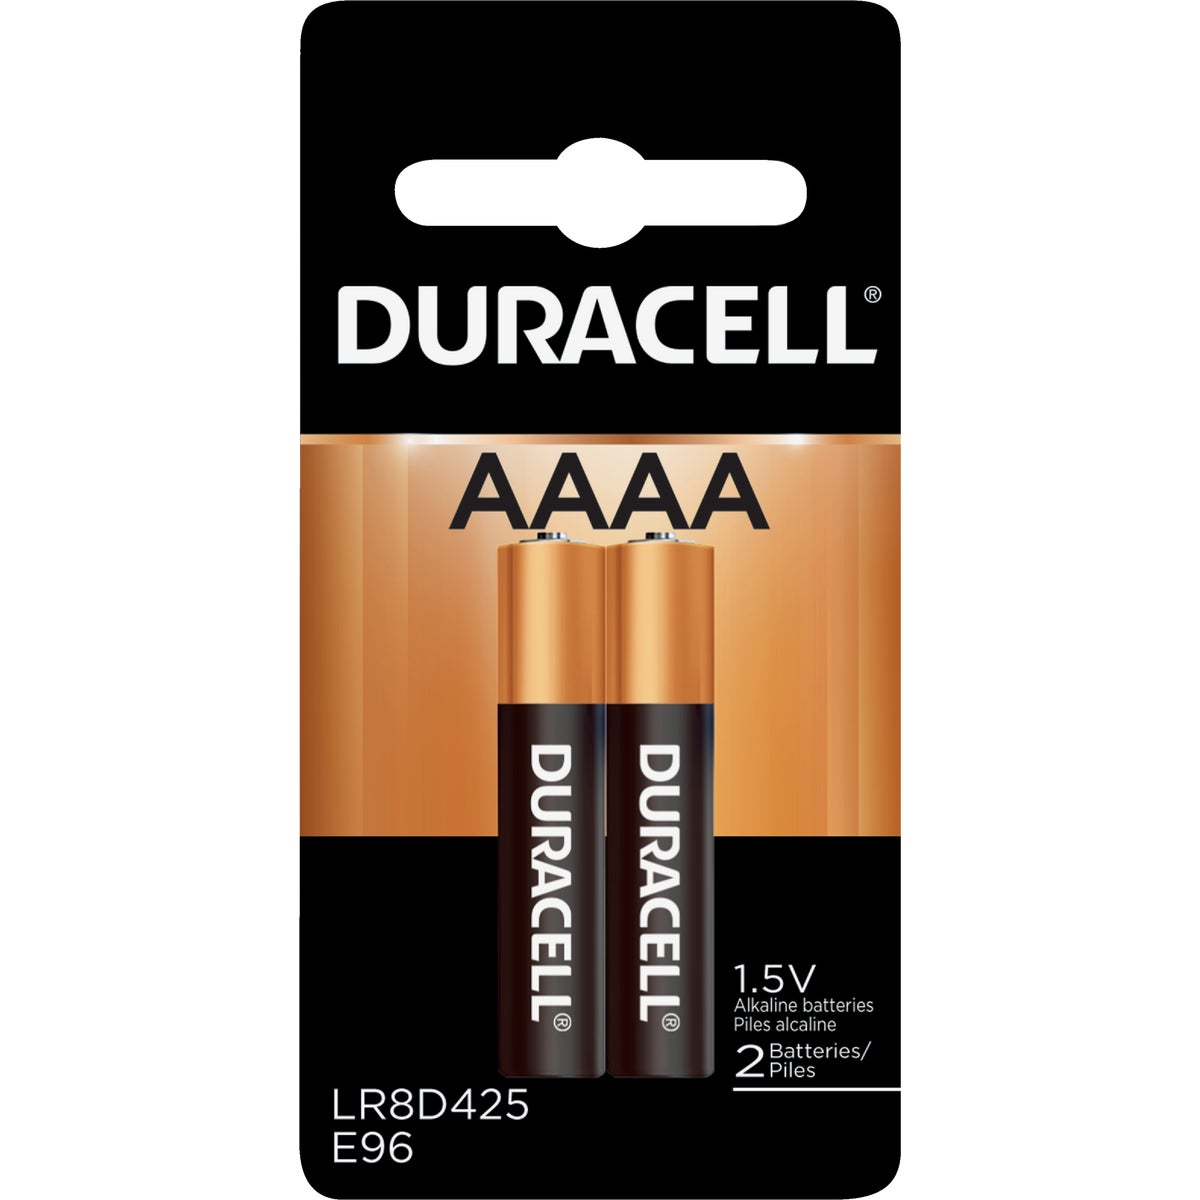 MX2500 1.5V PHOT BATTERY - 45387 by P & G  Duracell